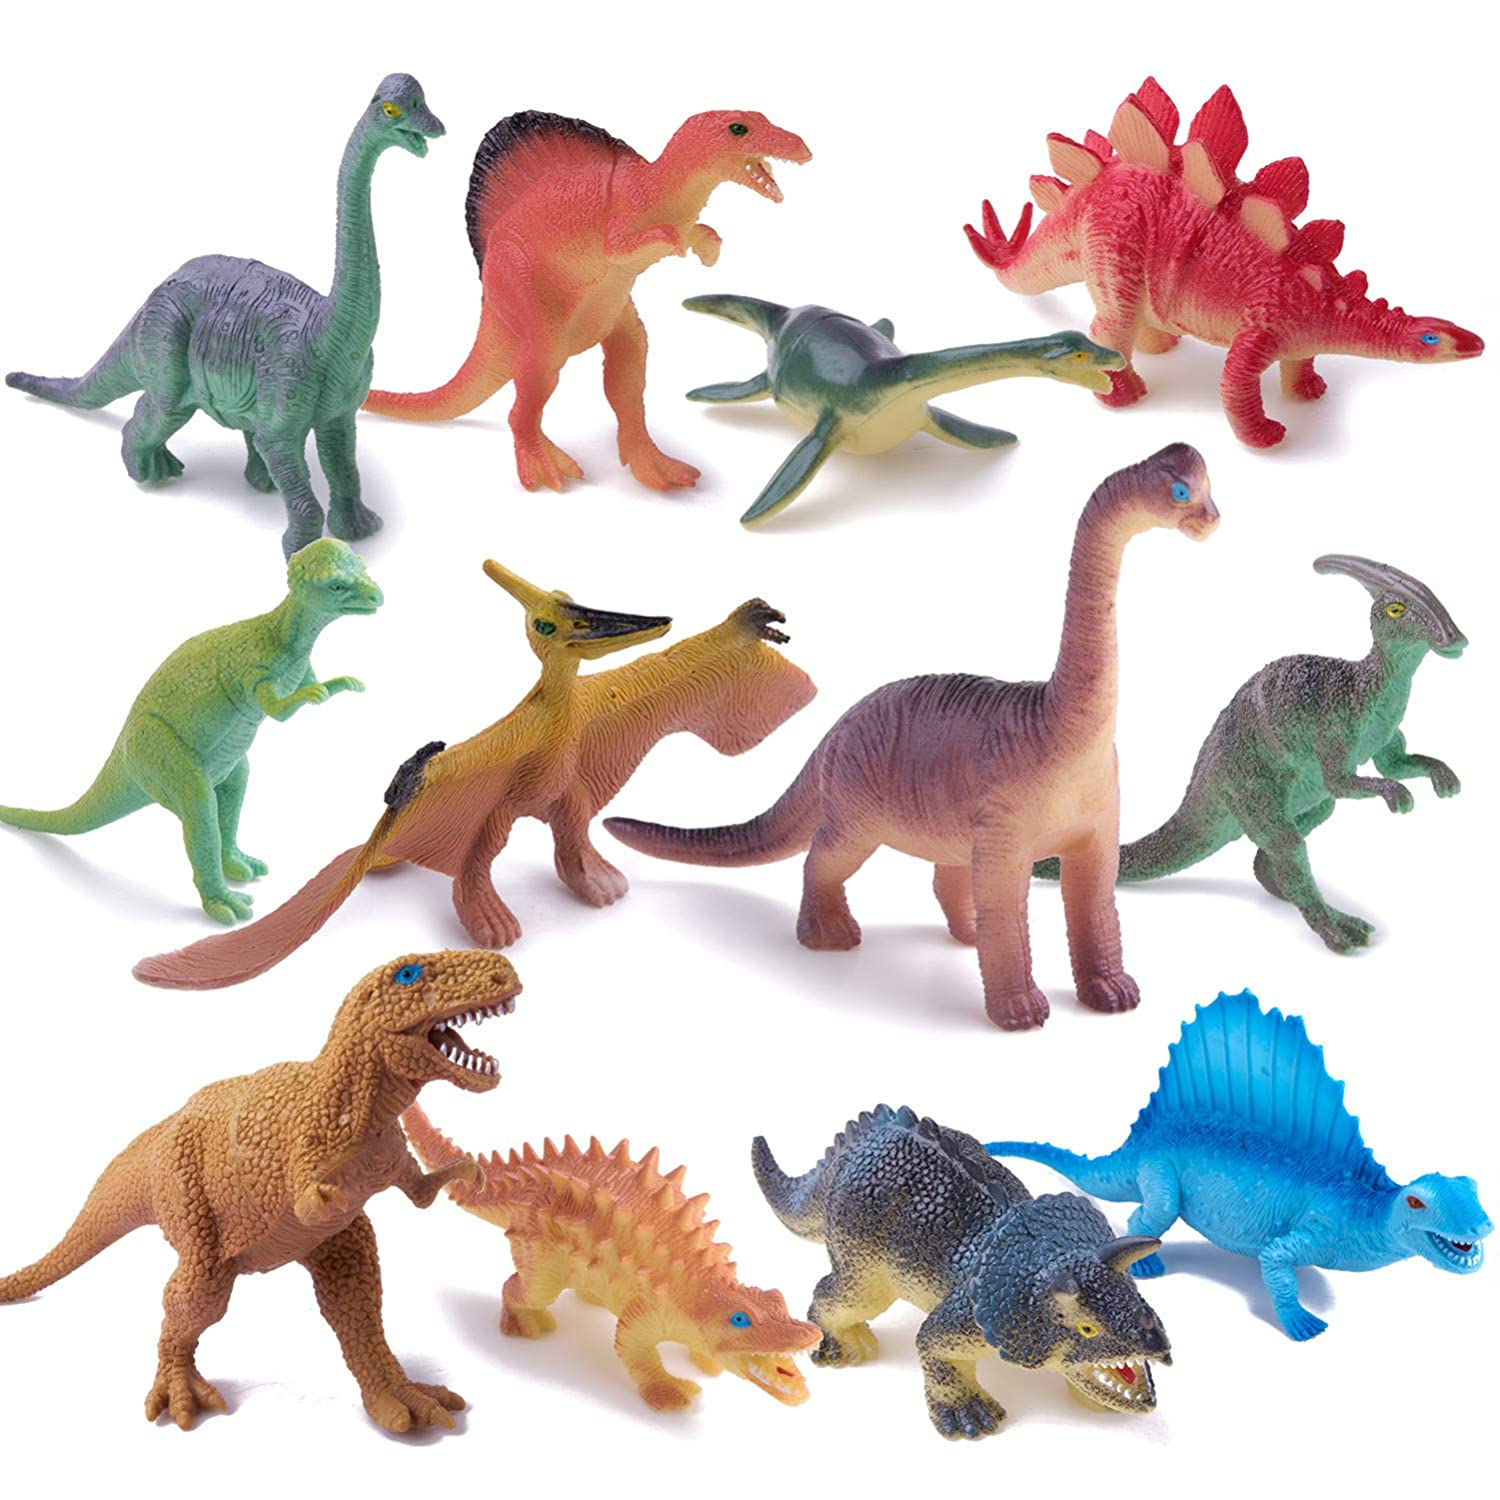 Peruser Toy 12 Pack 6 -12' Educational Dinosaur Toy Box, Including T-Rex ,Triceratops, etc